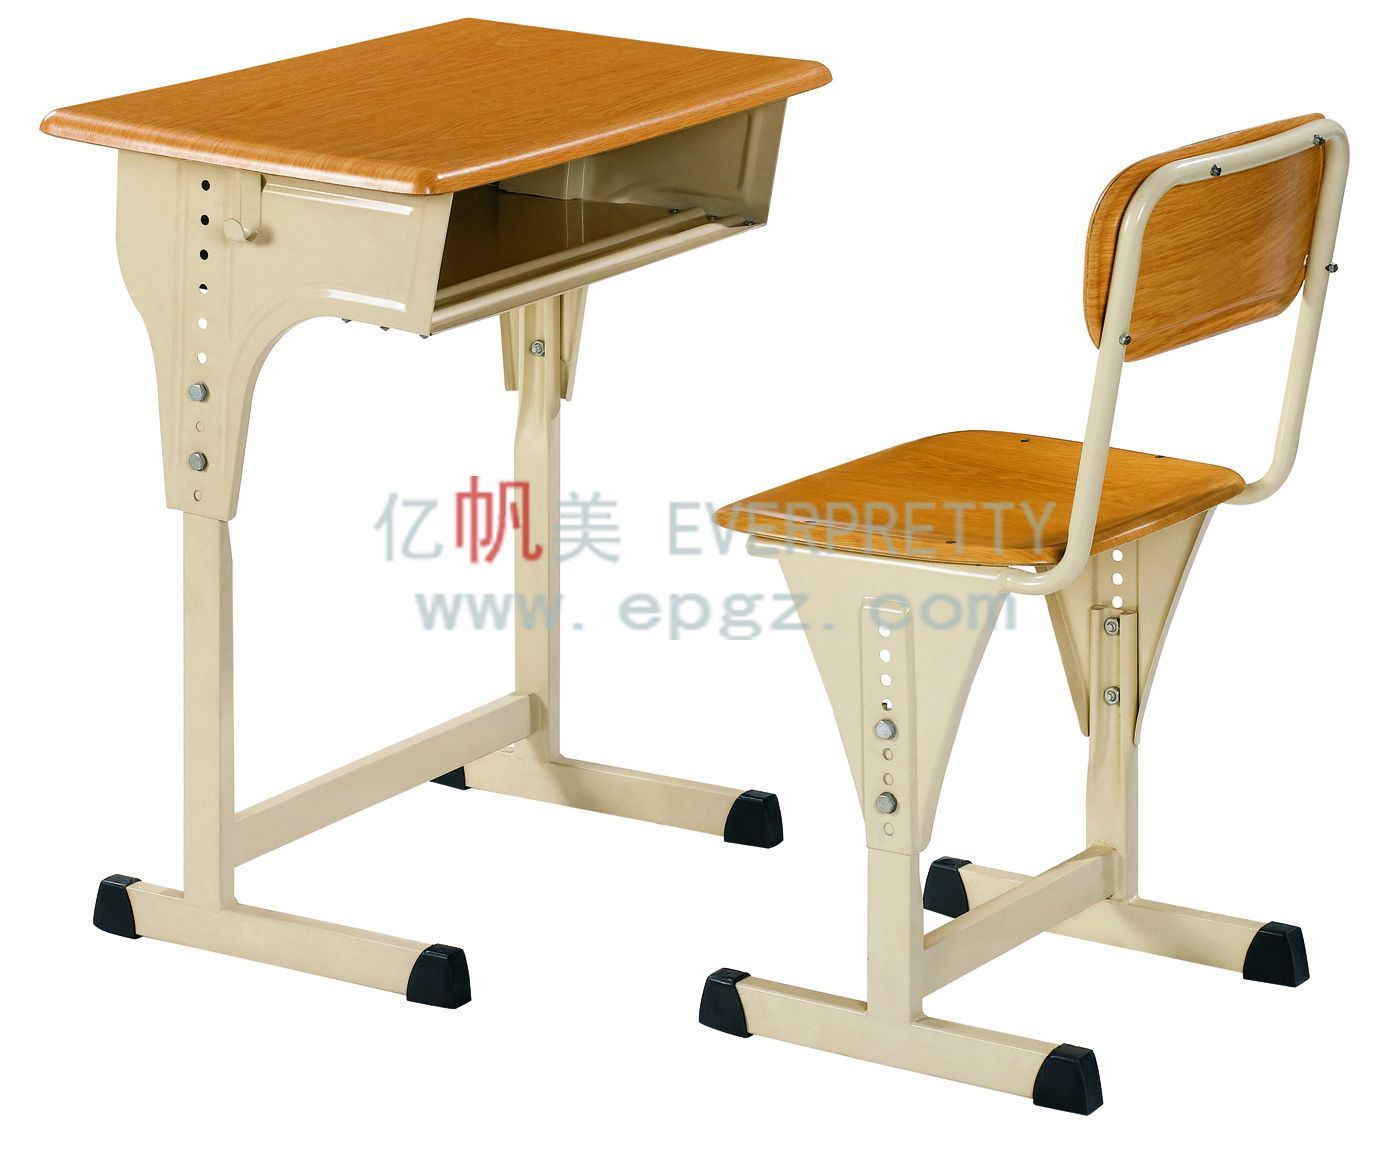 Study Table Chair Set : ... -Desk-and-Chair-School-Sets-Student-Table-and-Chair-Study-Table.jpg